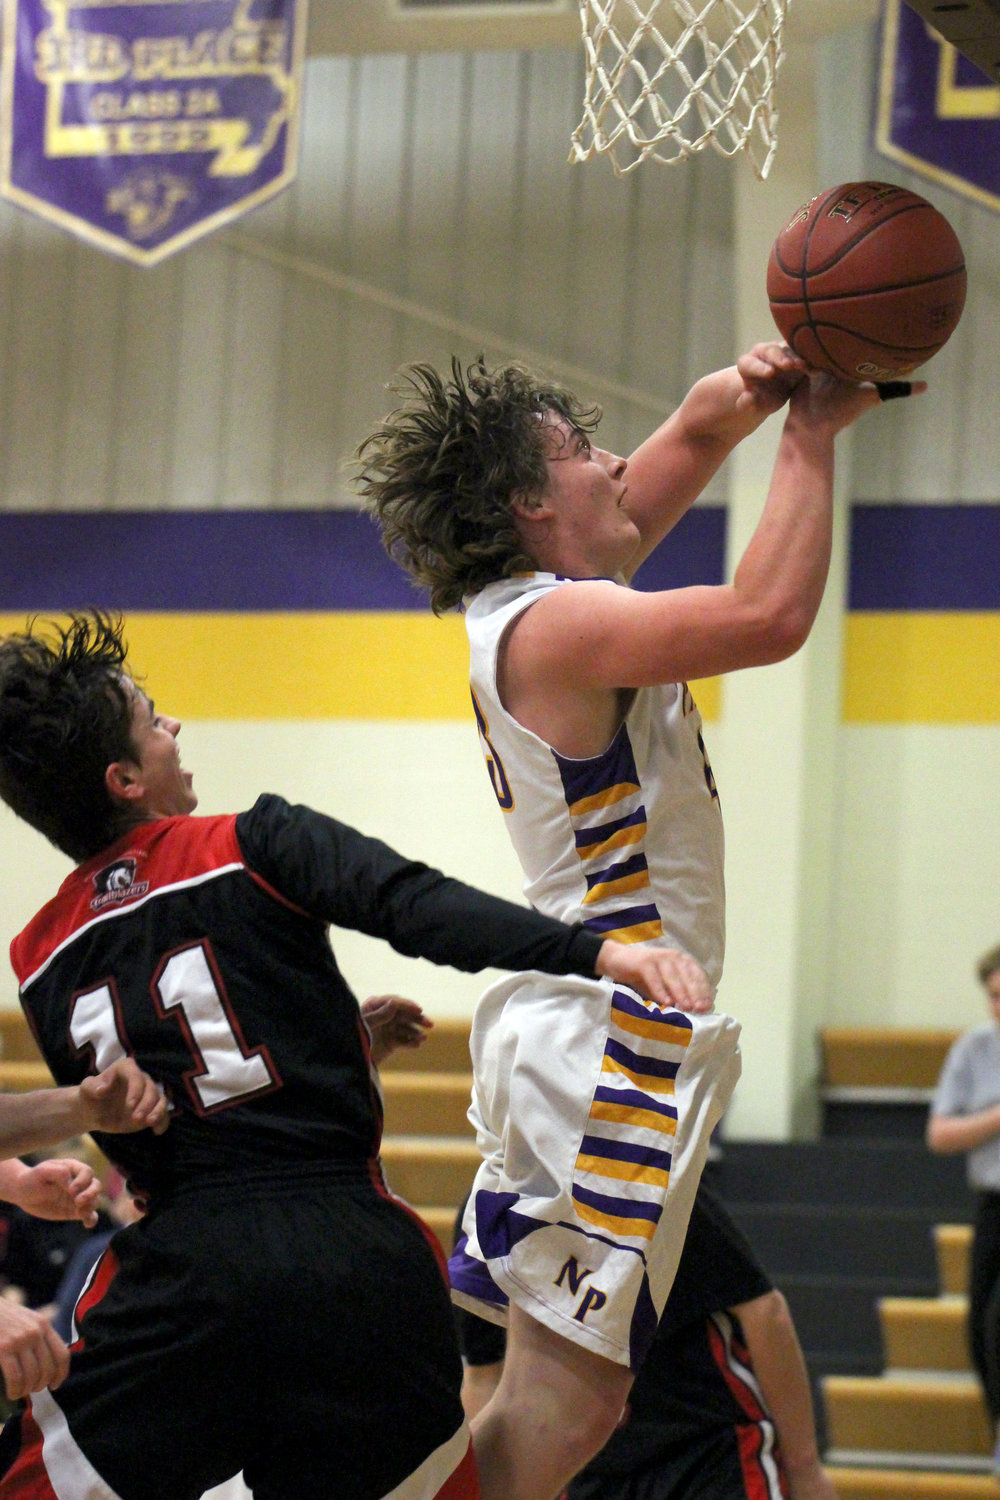 ROSS MARTIN/Citizen photo North Platte junior Jesse Martin draws a foul while going up for a shot against Northland Christian on Monday, Dec. 11 at North Platte High School in Dearborn, Mo.